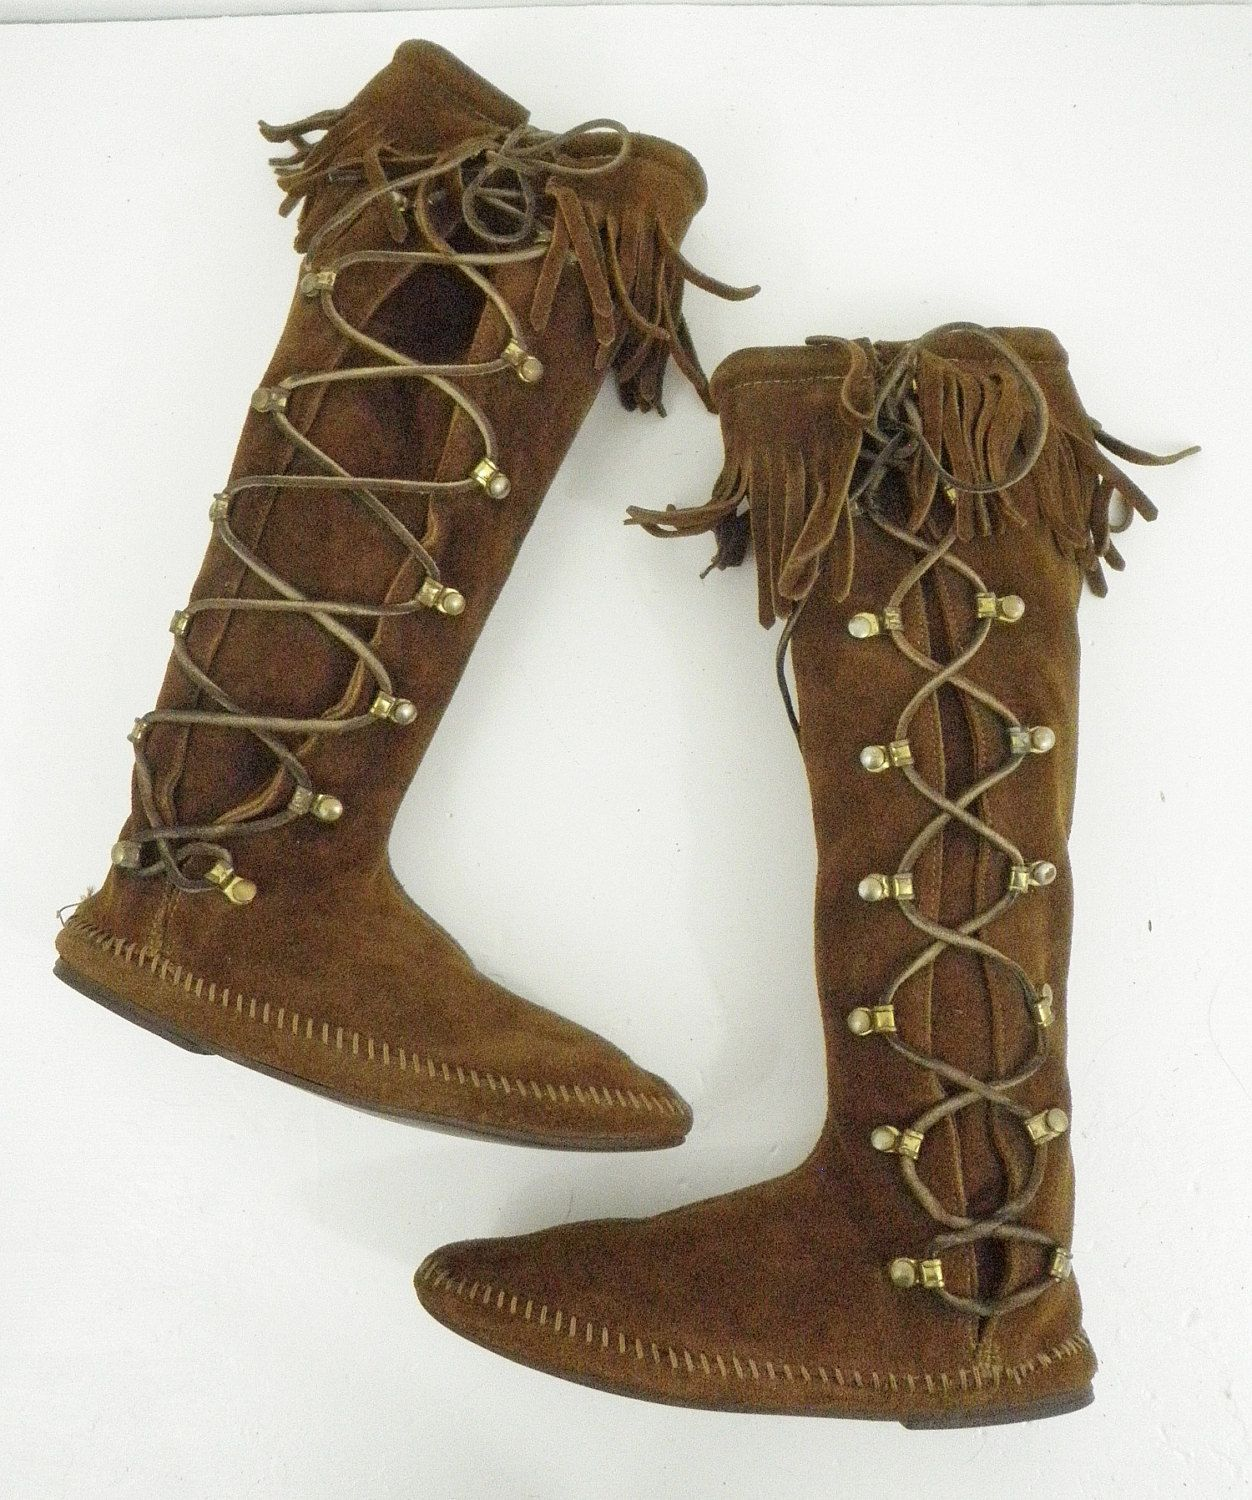 cd12ba91f5237 Minnetonka Brown Tall Fringe Boots Suede Size 7 Side Lace Boho Hippie  Vintage by TraSheeWomen on Etsy #minnetonka #tallboots #fringeboots  #hippieboots ...